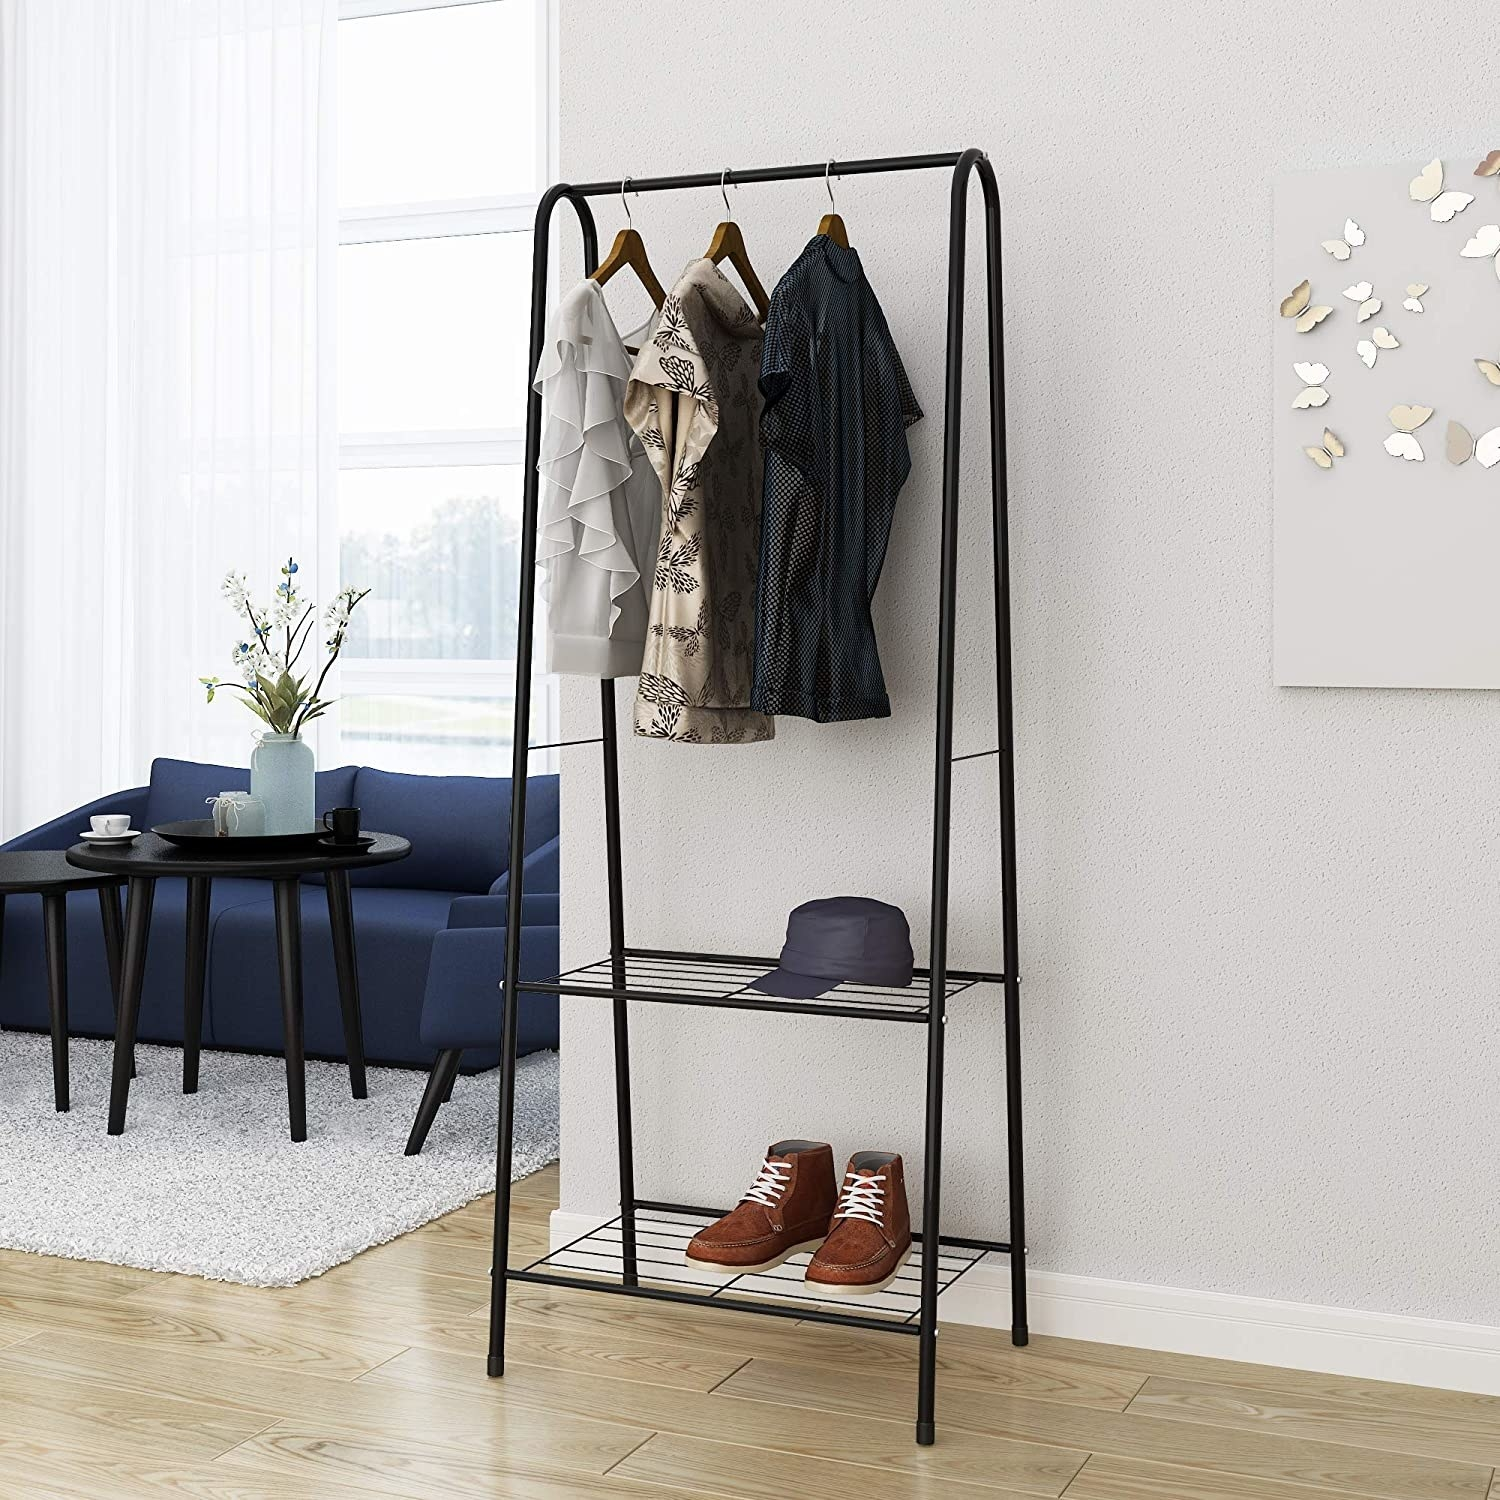 The clothing rack with three shirts, a hat, and a pair of shoes on it